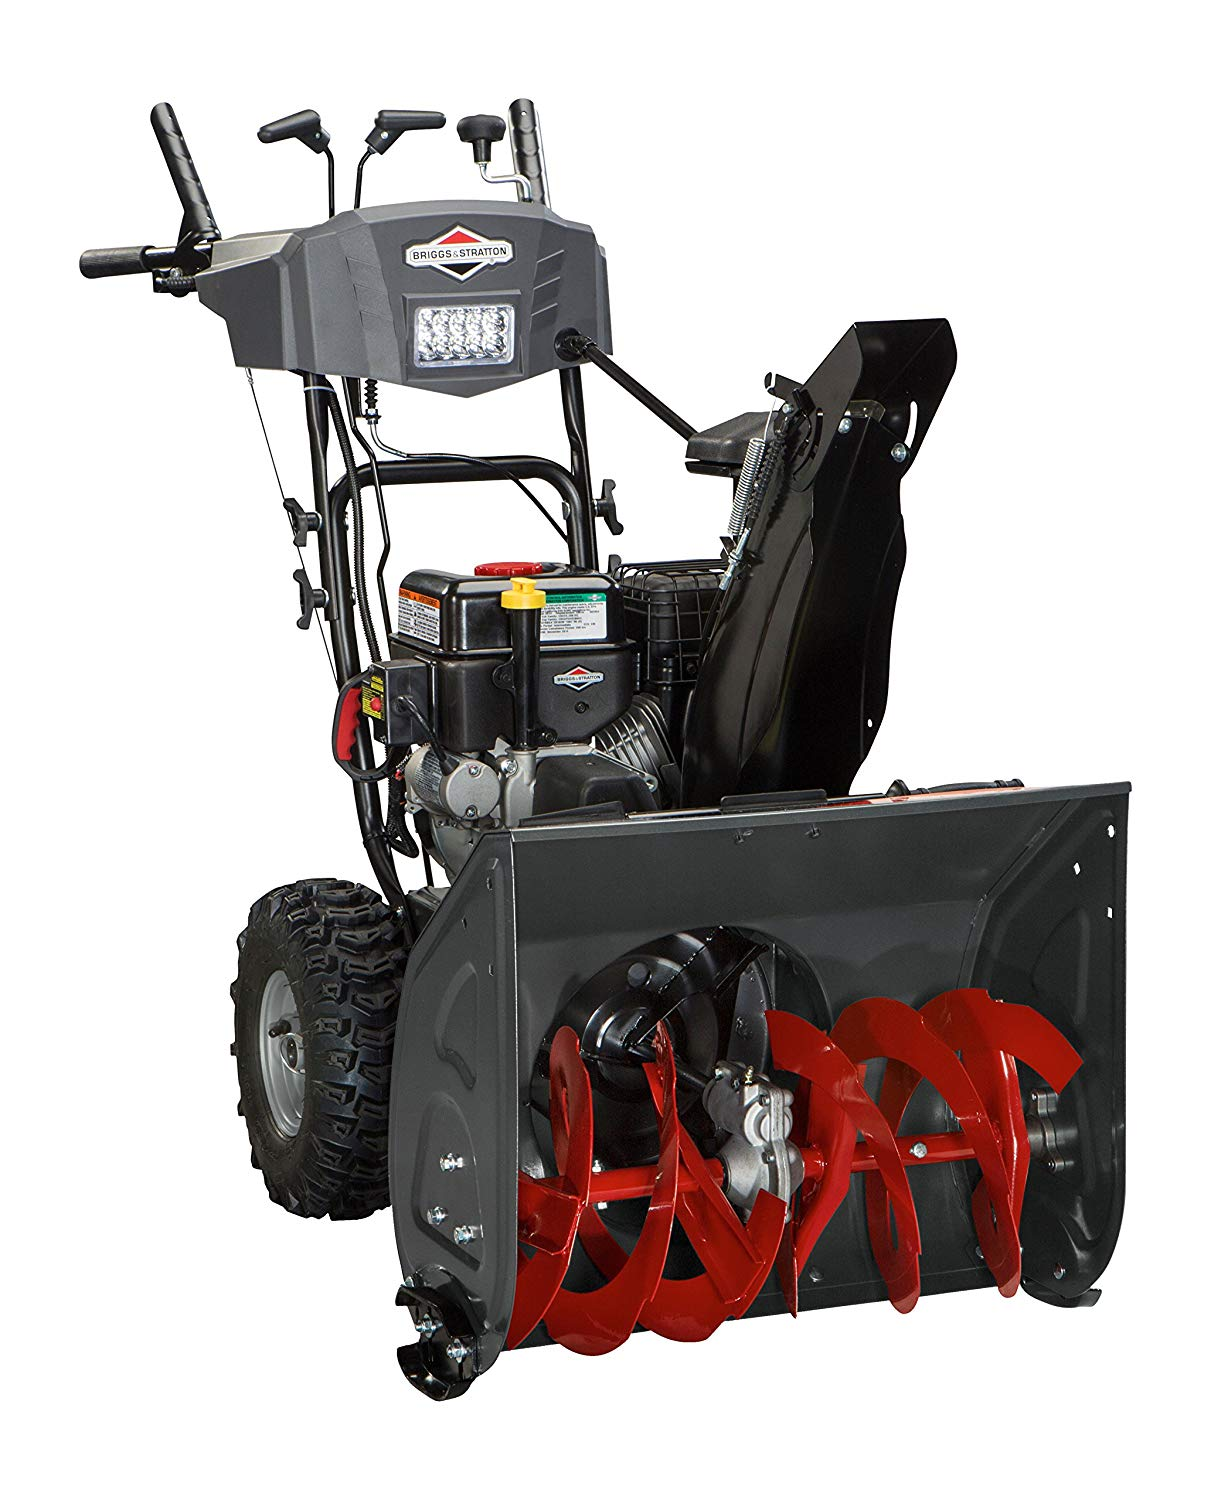 Briggs and Stratton 1696614 208cc Dual-Stage Snow Thrower